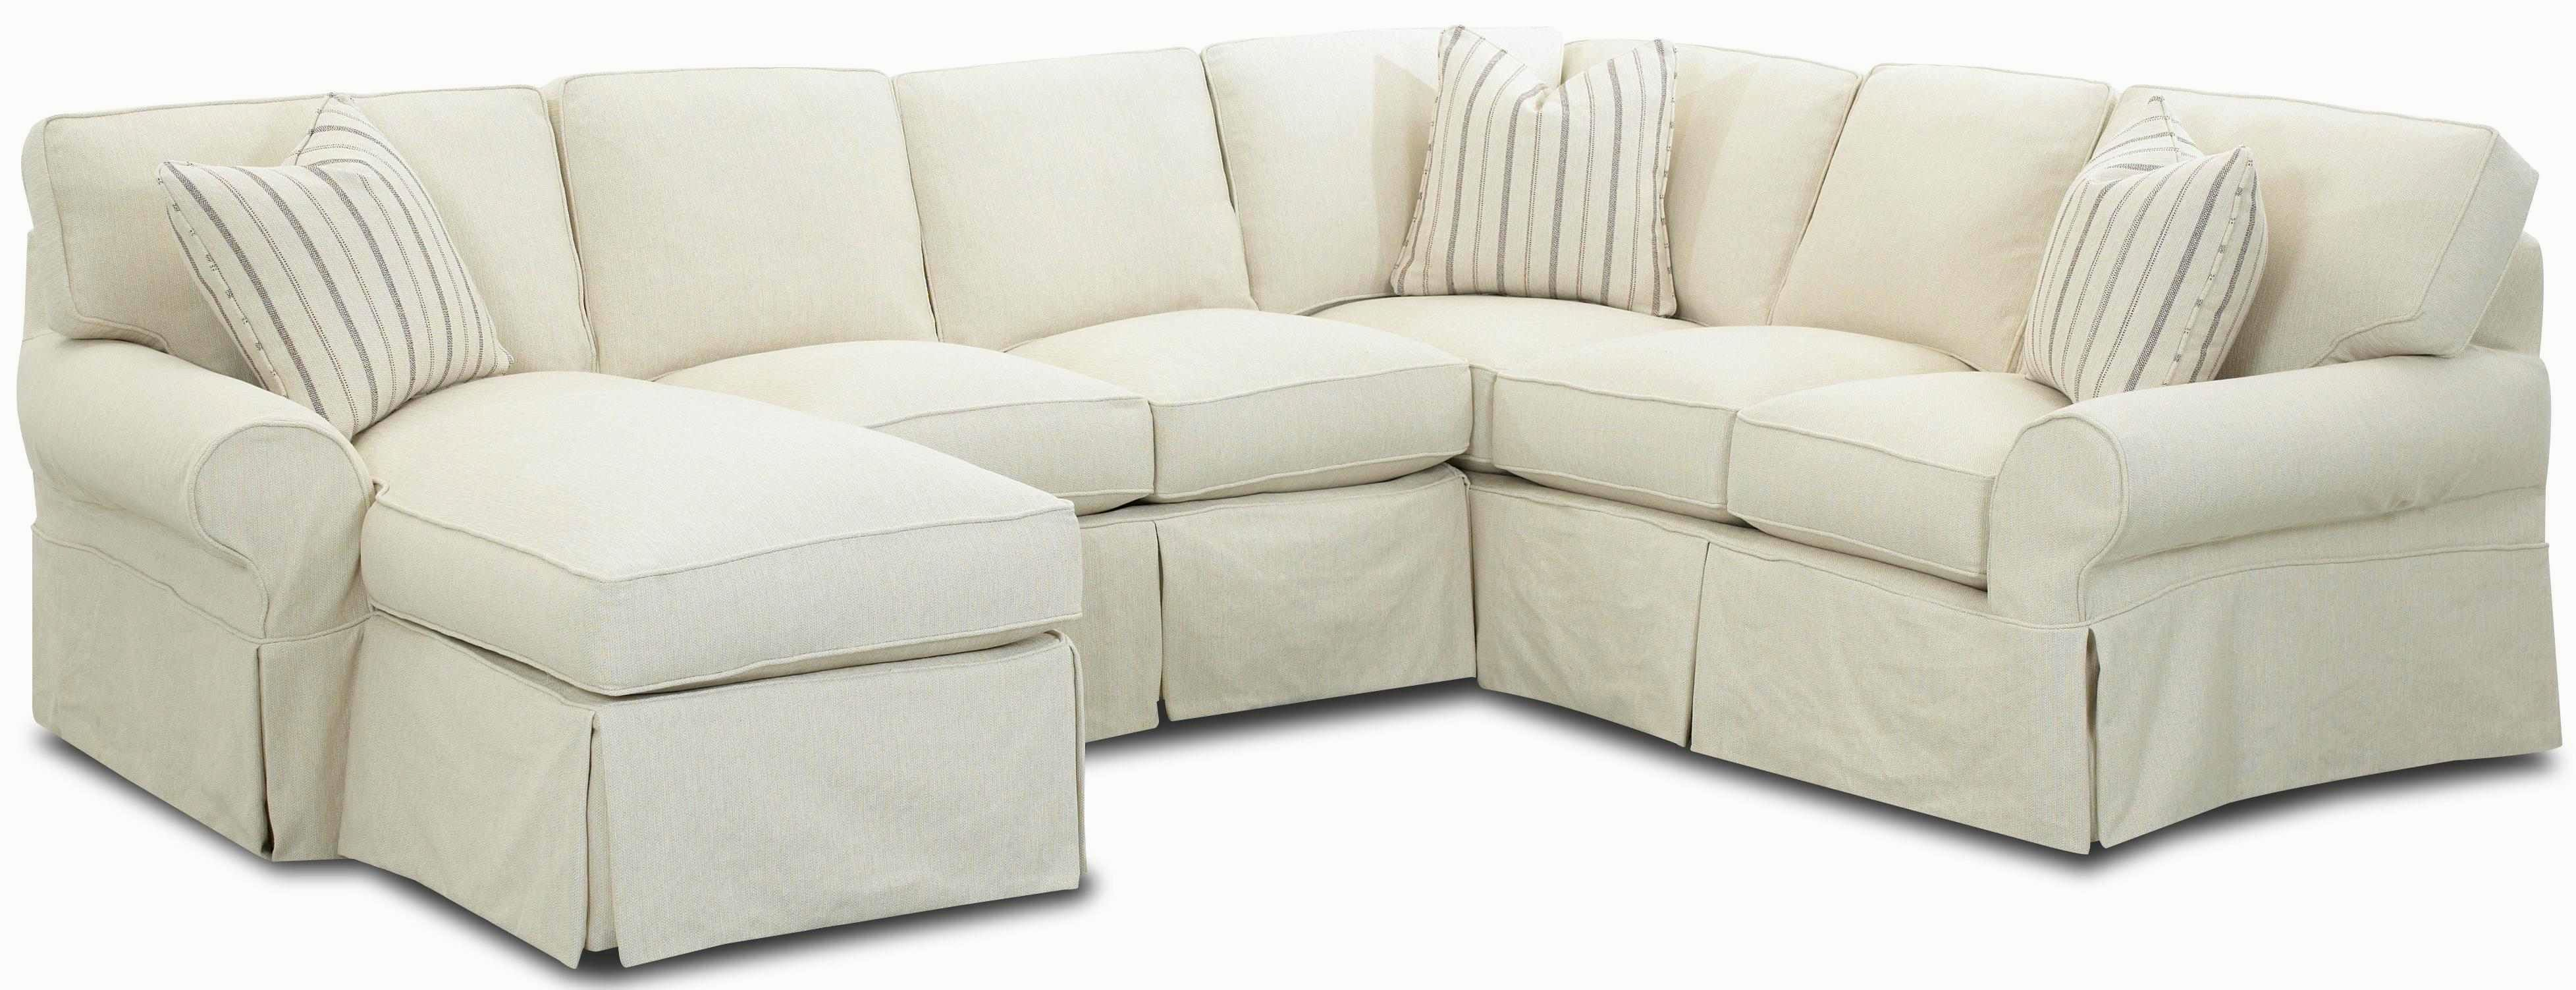 latest outdoor sectional sofa inspiration-Stylish Outdoor Sectional sofa Design